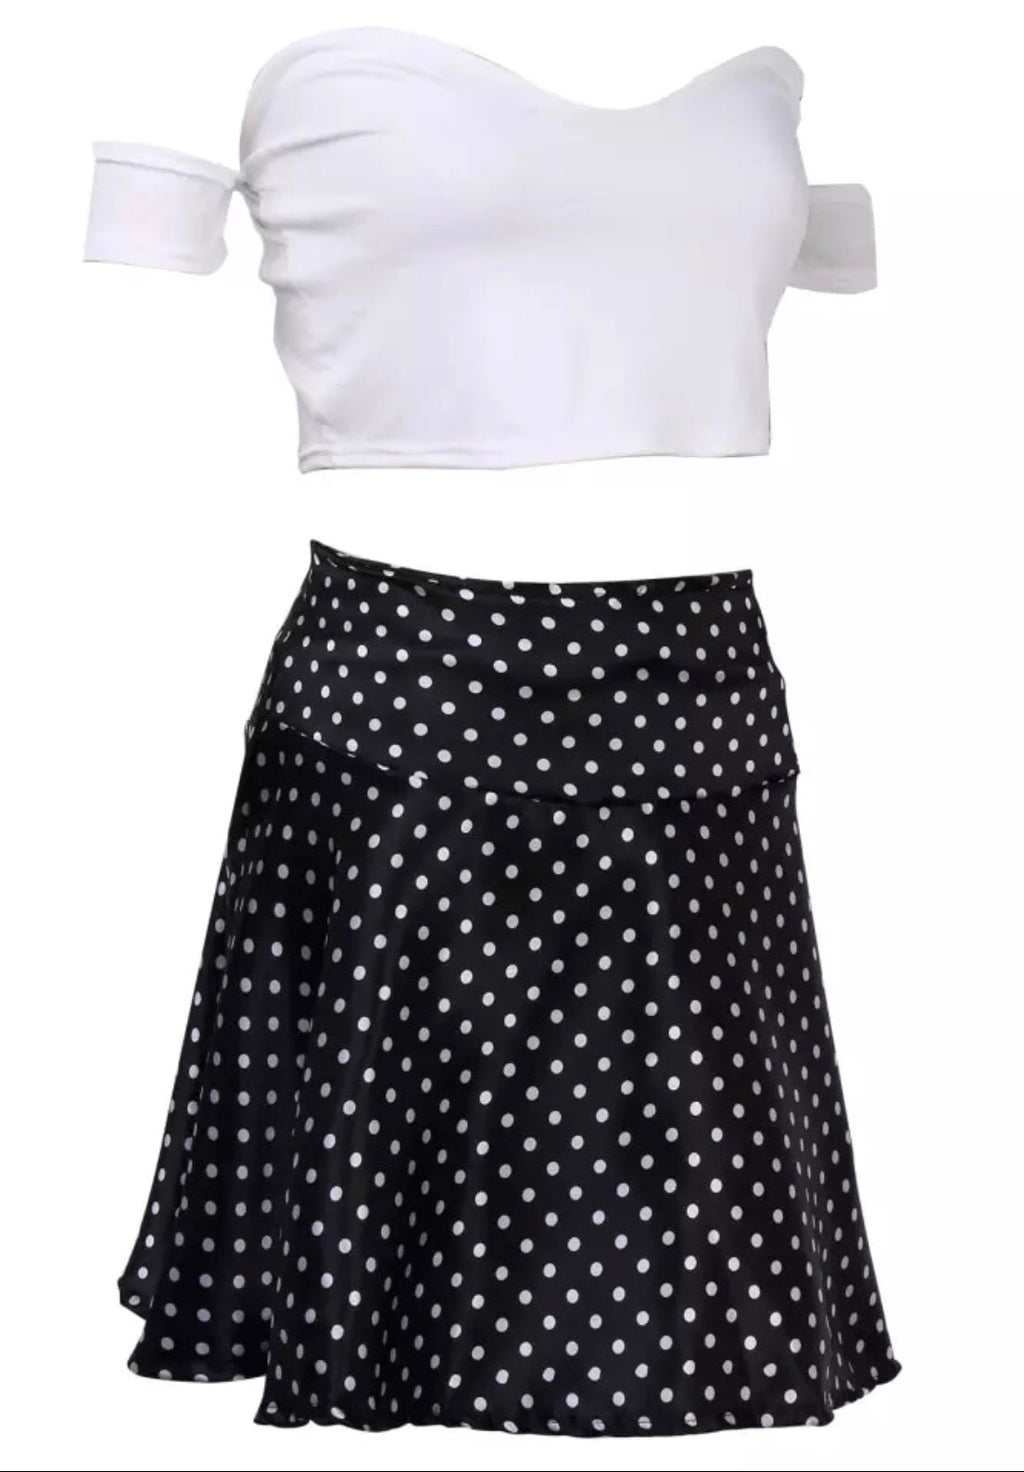 Polka Dot skirt set